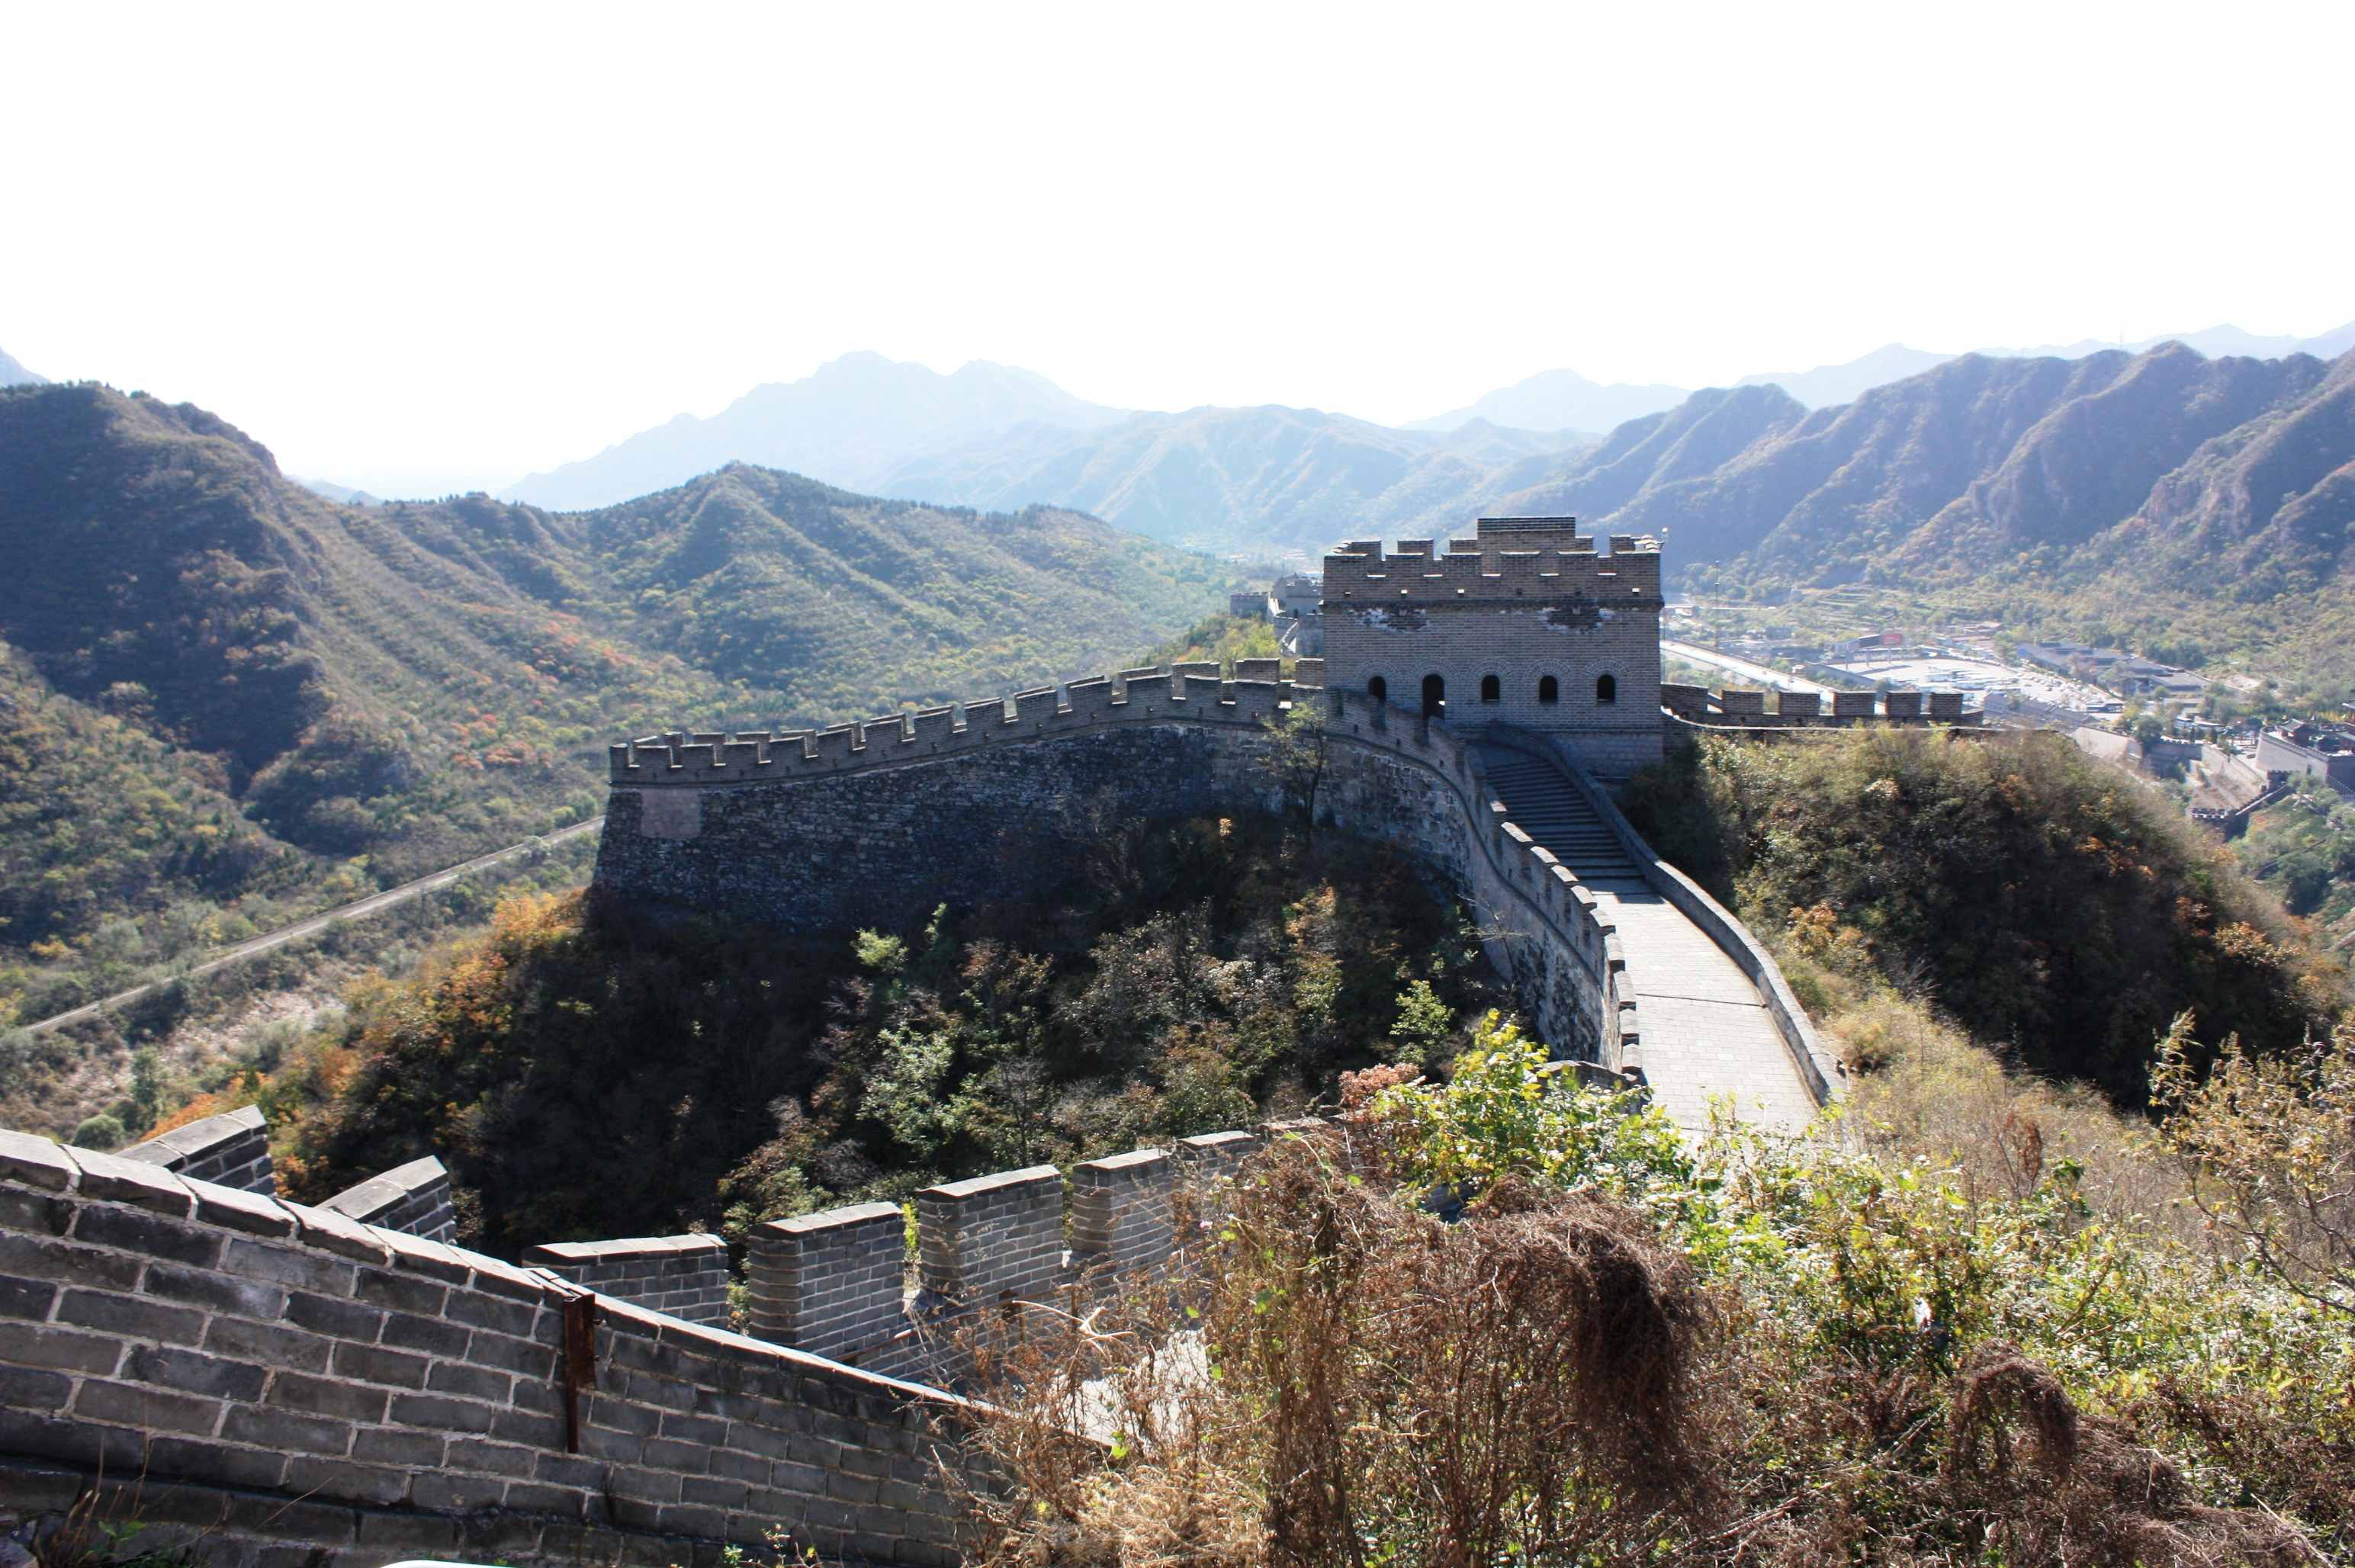 The Great Wall since China's first emperor Qin Shi Huang